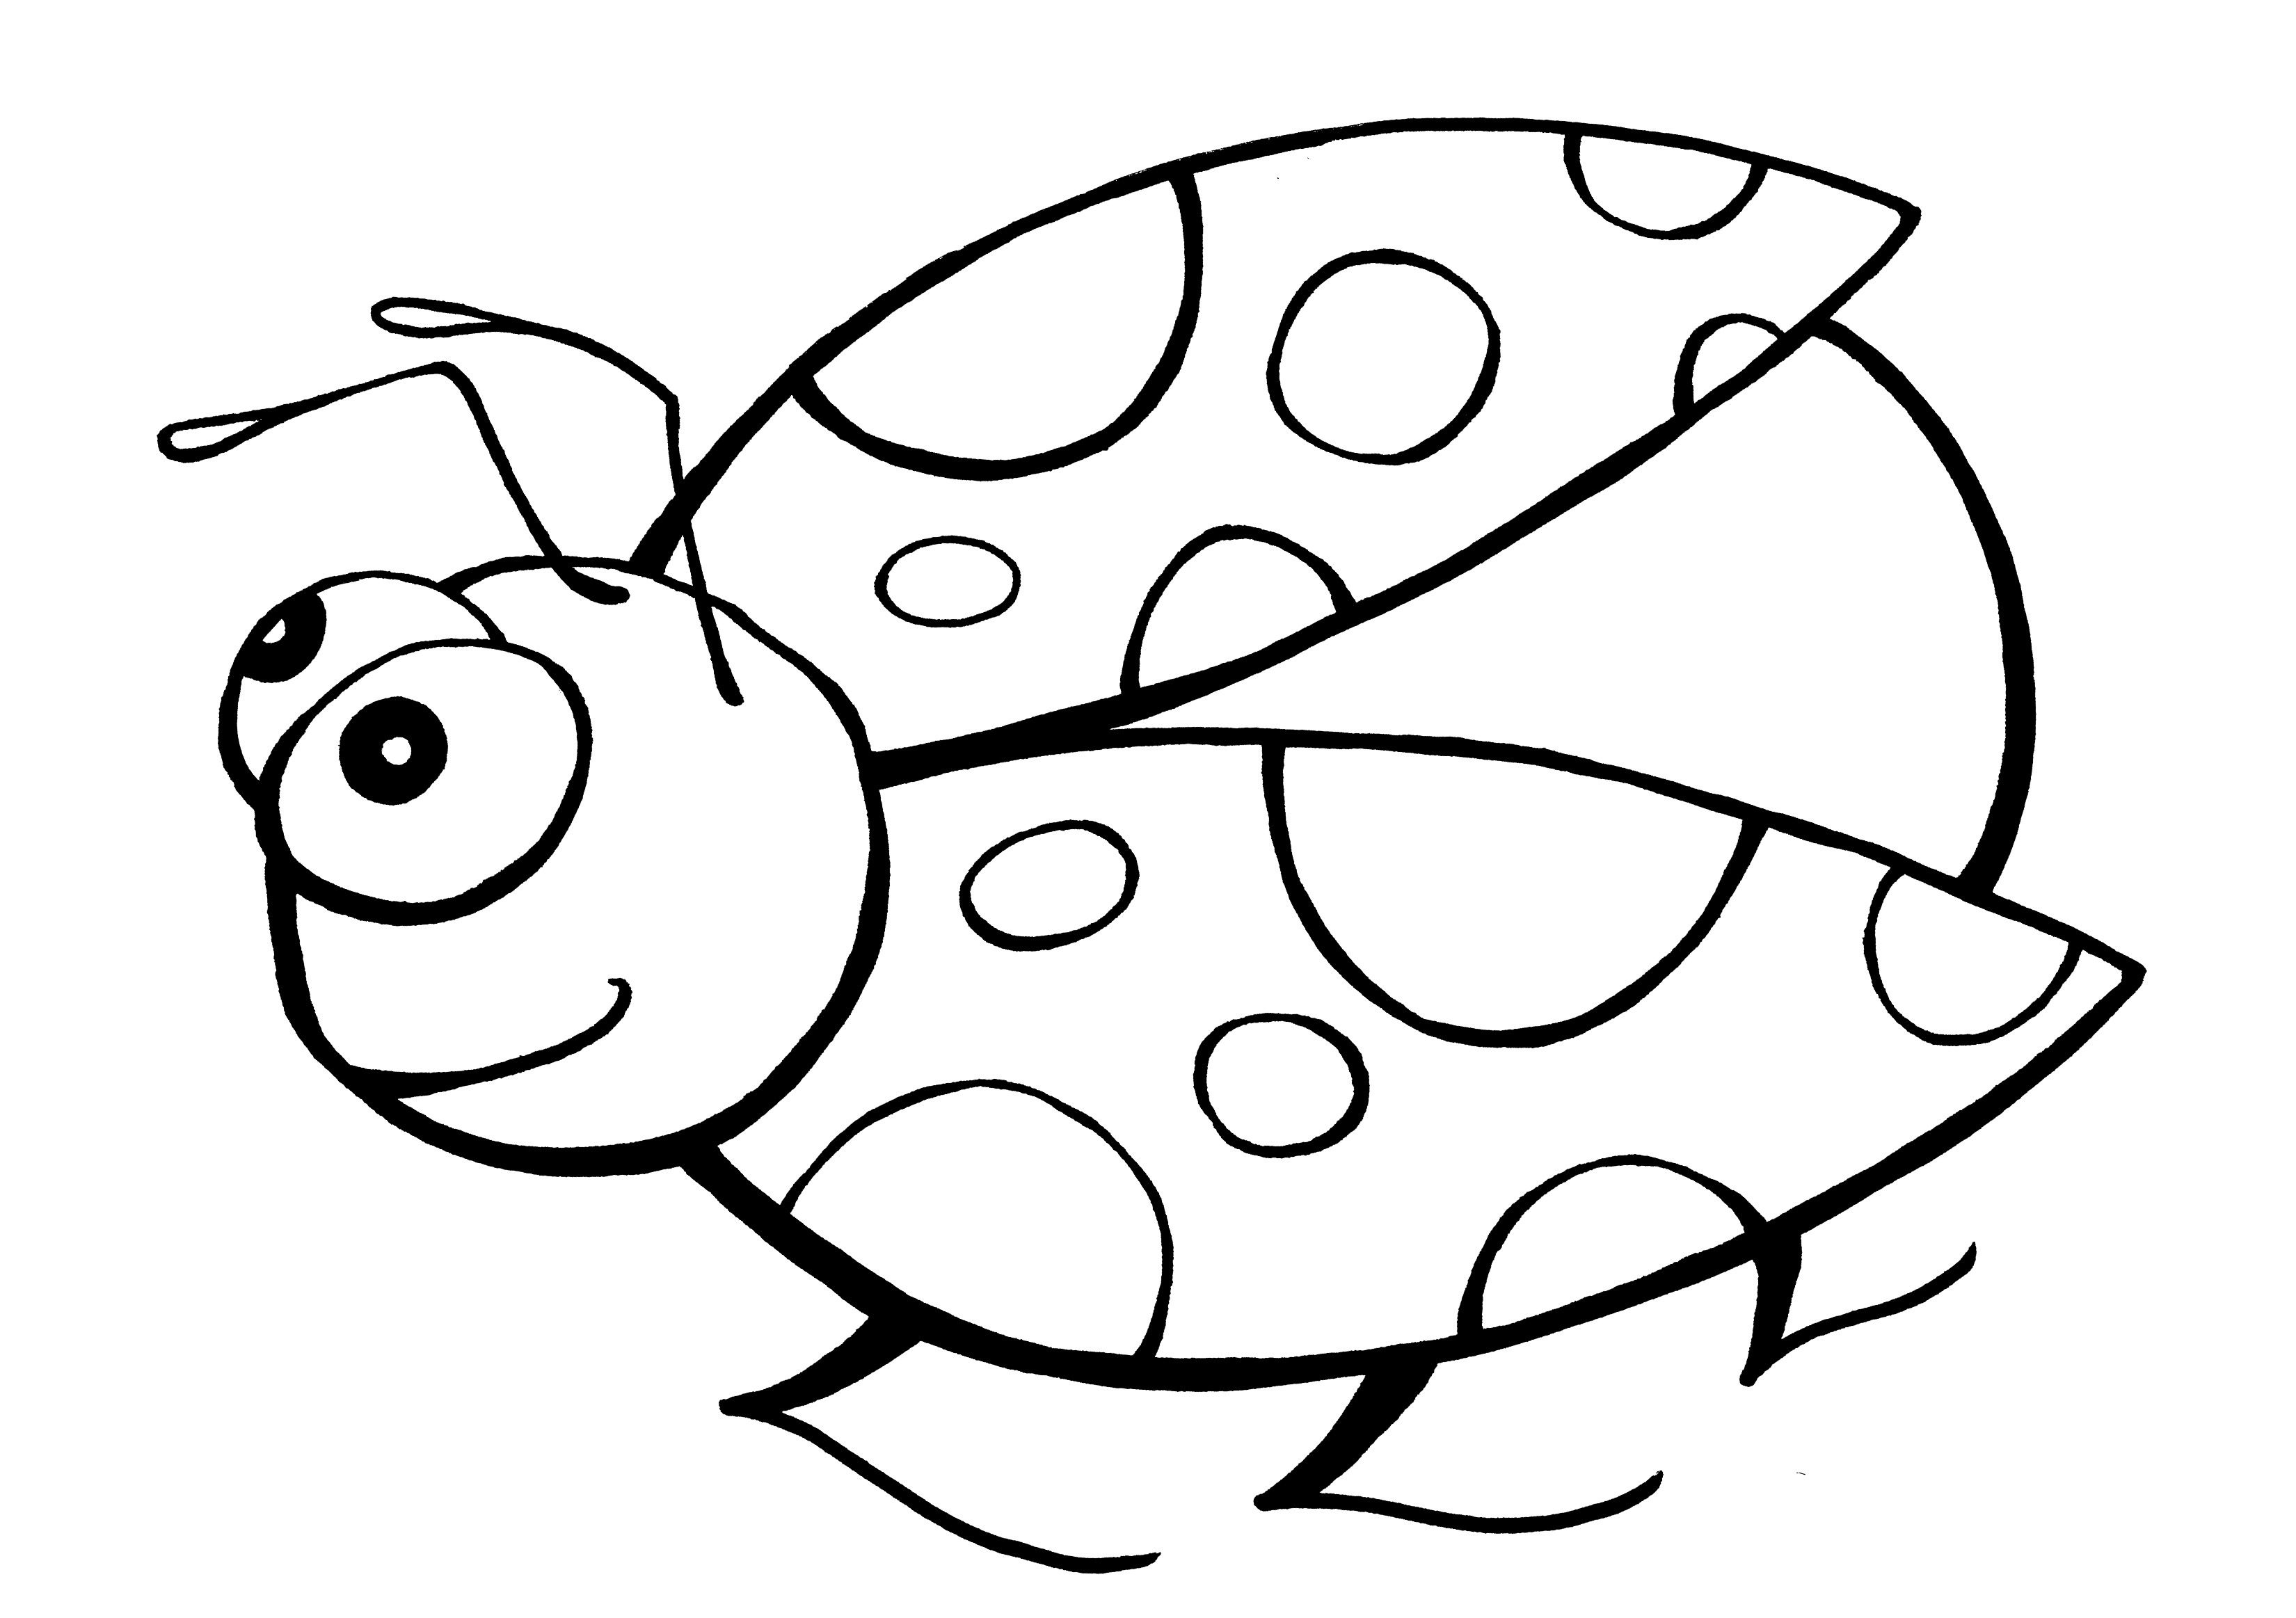 ladybug coloring pages ladybug coloring pages to download and print for free ladybug coloring pages